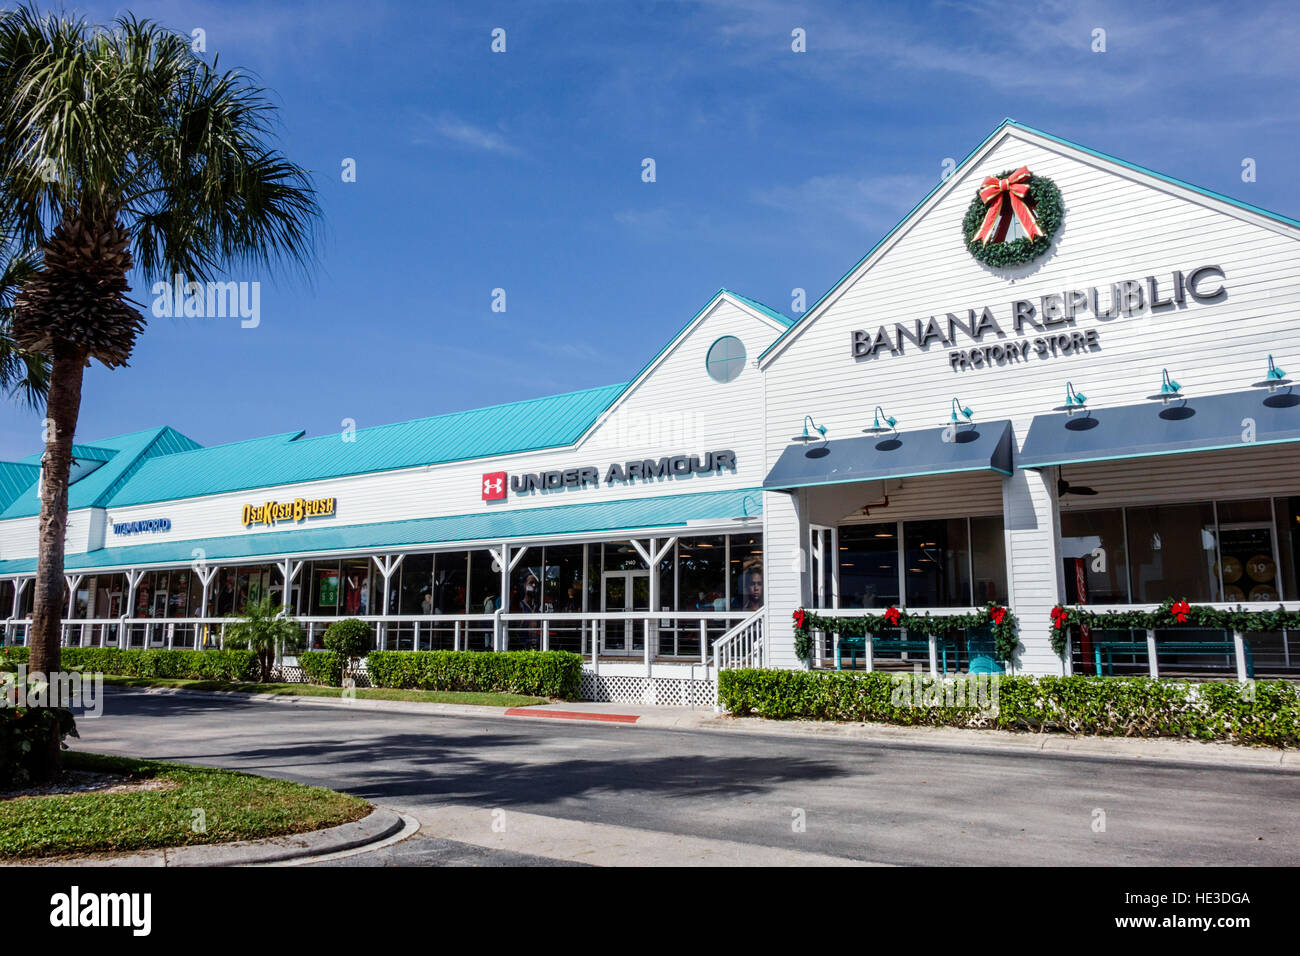 953d03c56 Fort Myers Florida Ft. Sanibel Outlets shopping exterior Banana Republic  Under Armour